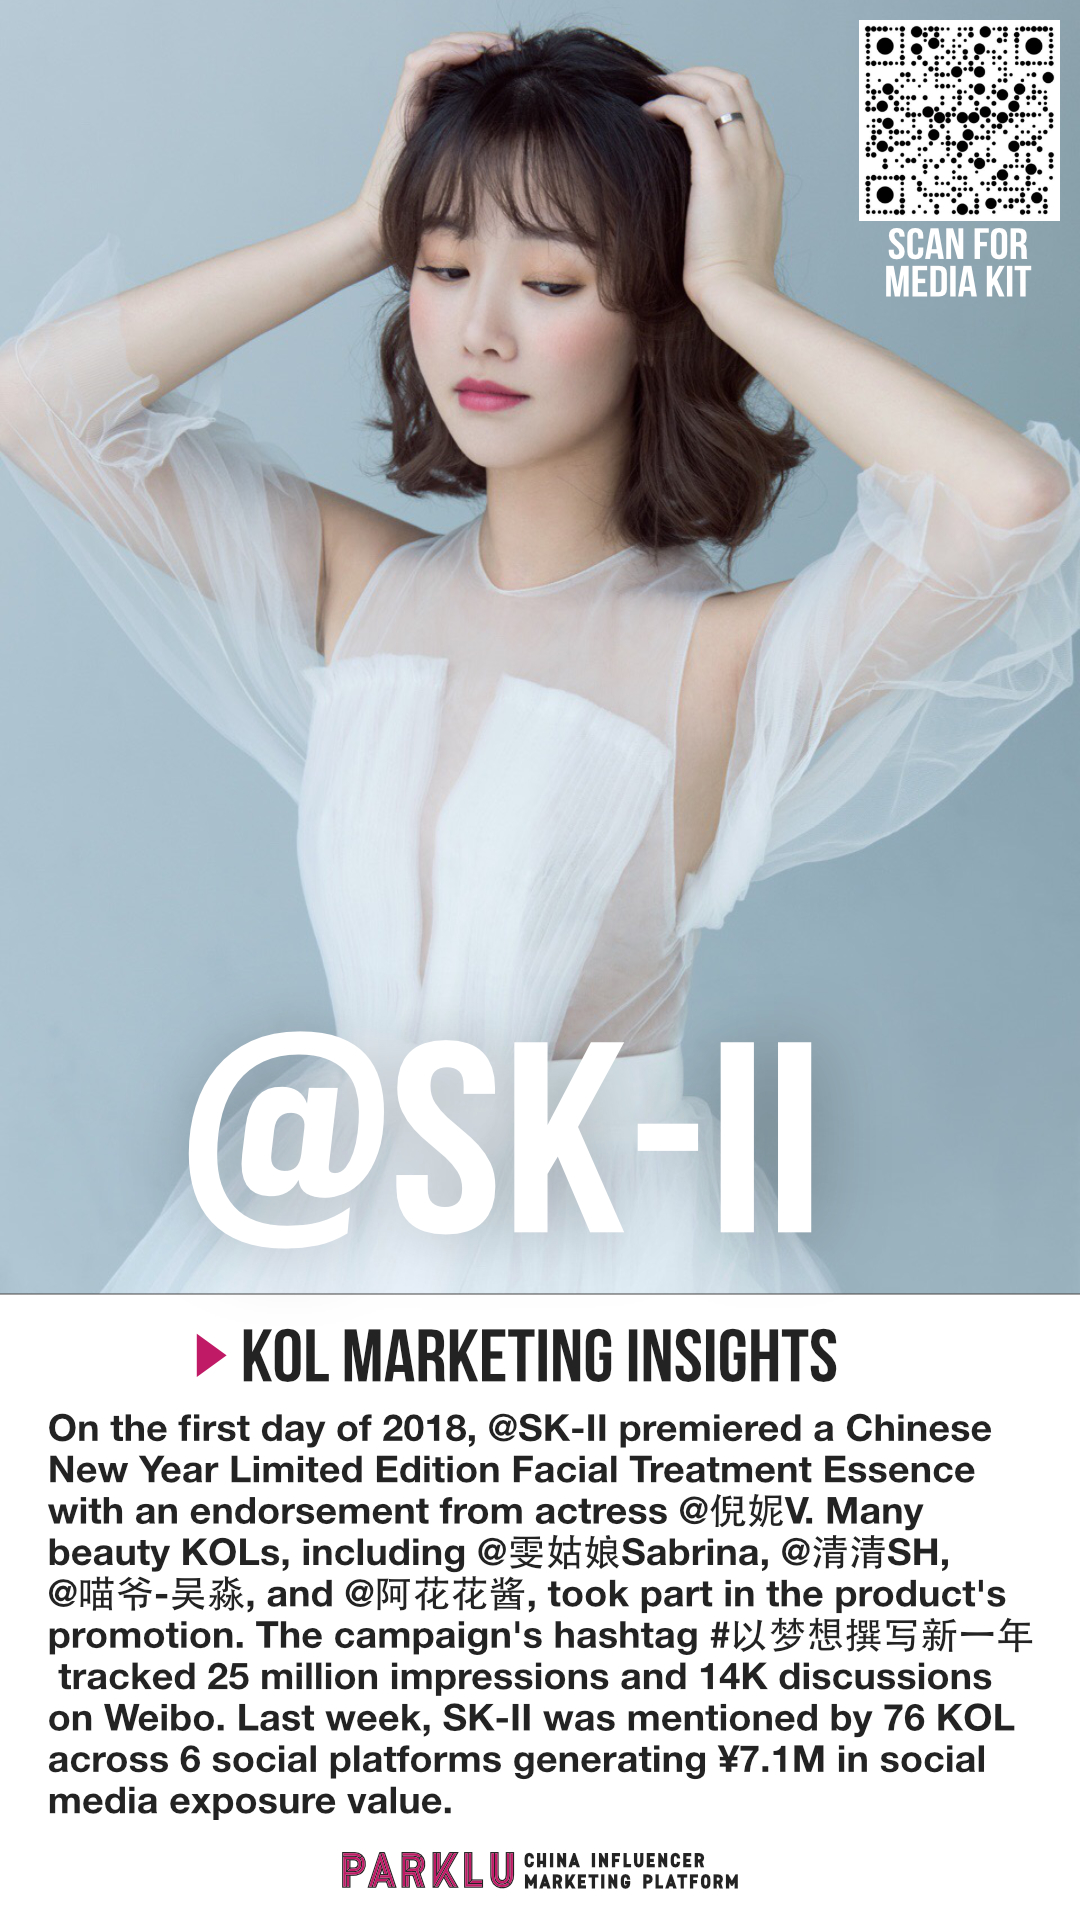 SK-II Promotes CNY Facial Treatment Essence with KOLs